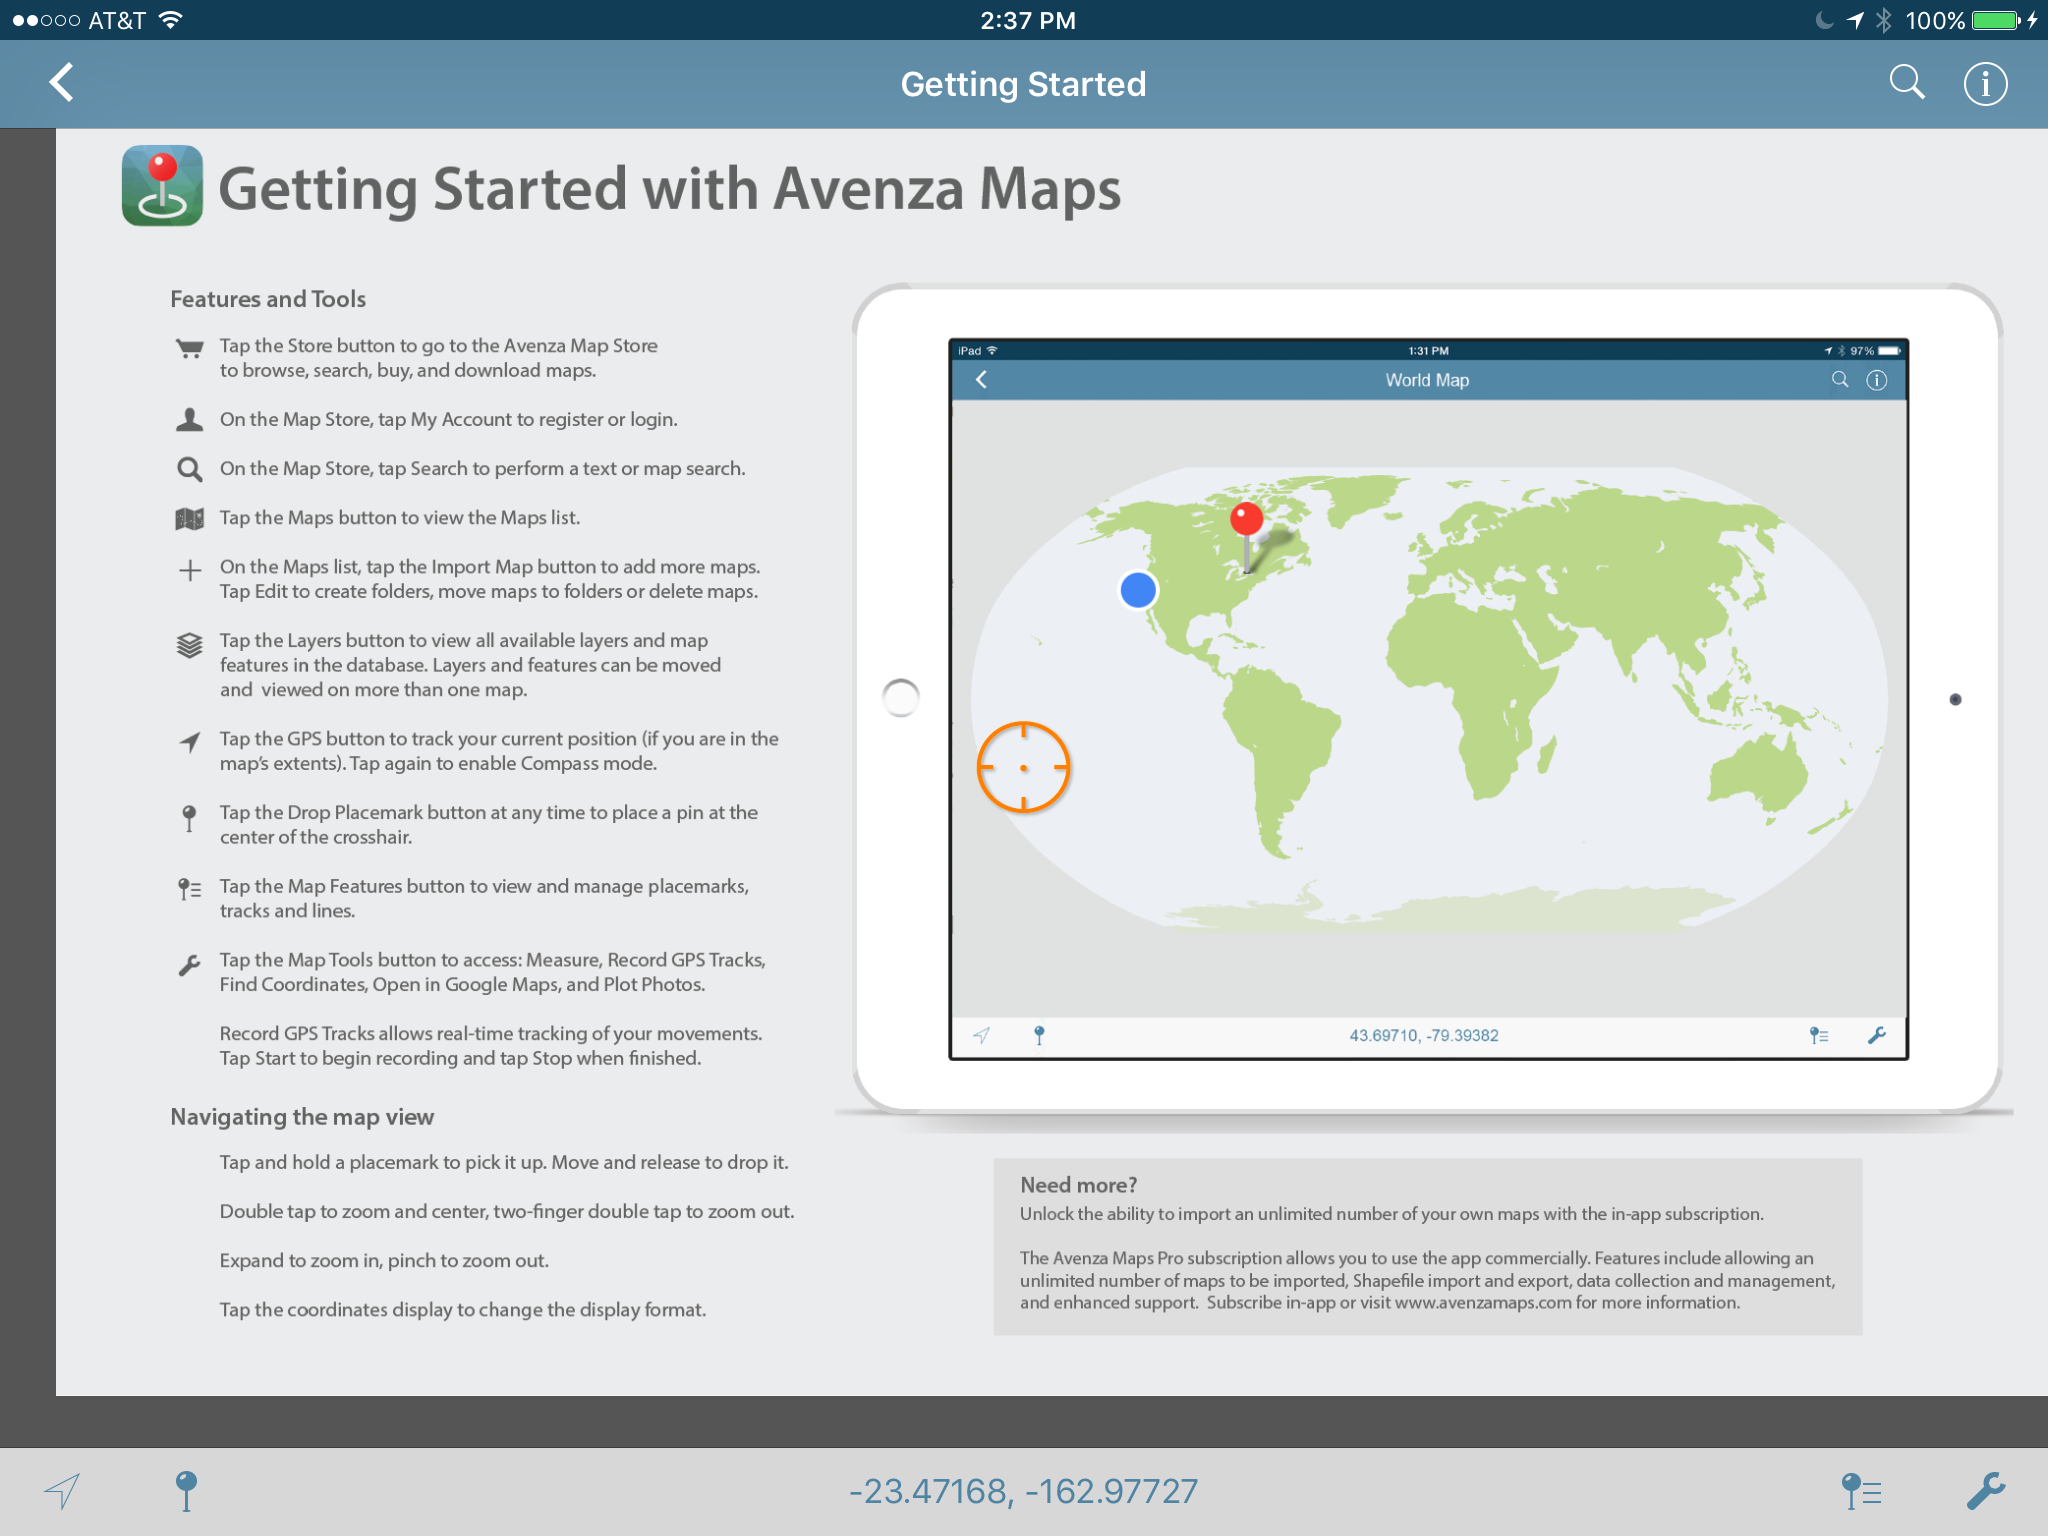 The Avenza Map App contains this handy Getting Started guide, which shows you everything you need to know on one page. It doesn't get any easier!